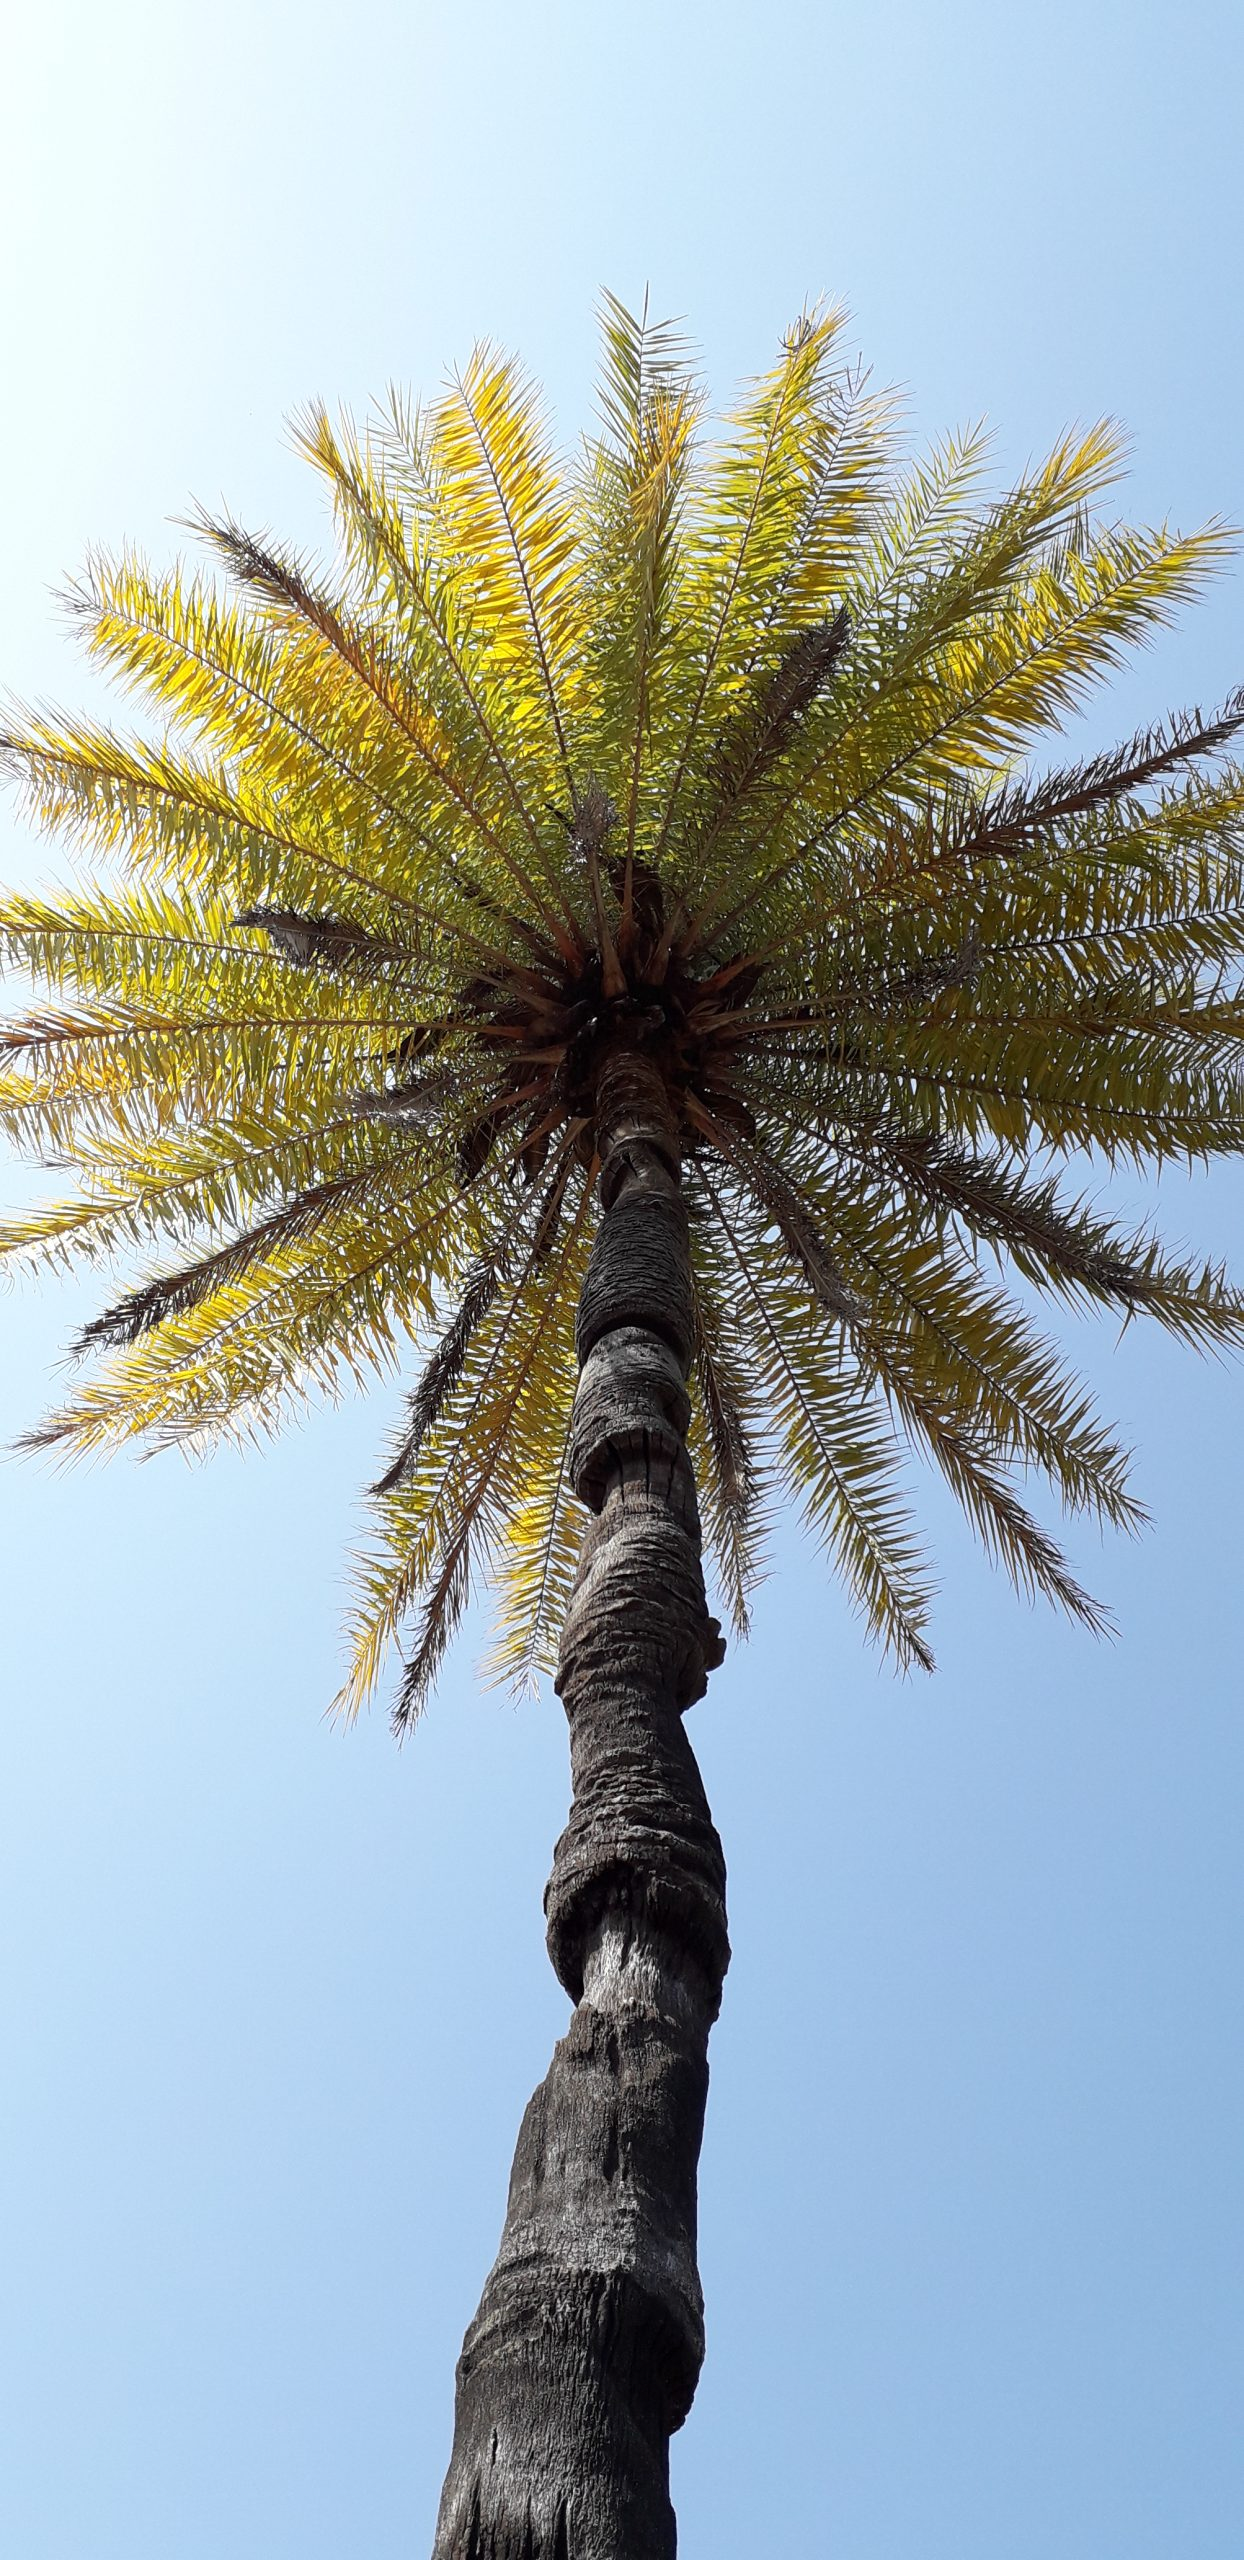 Palm tree under sunlight and sky